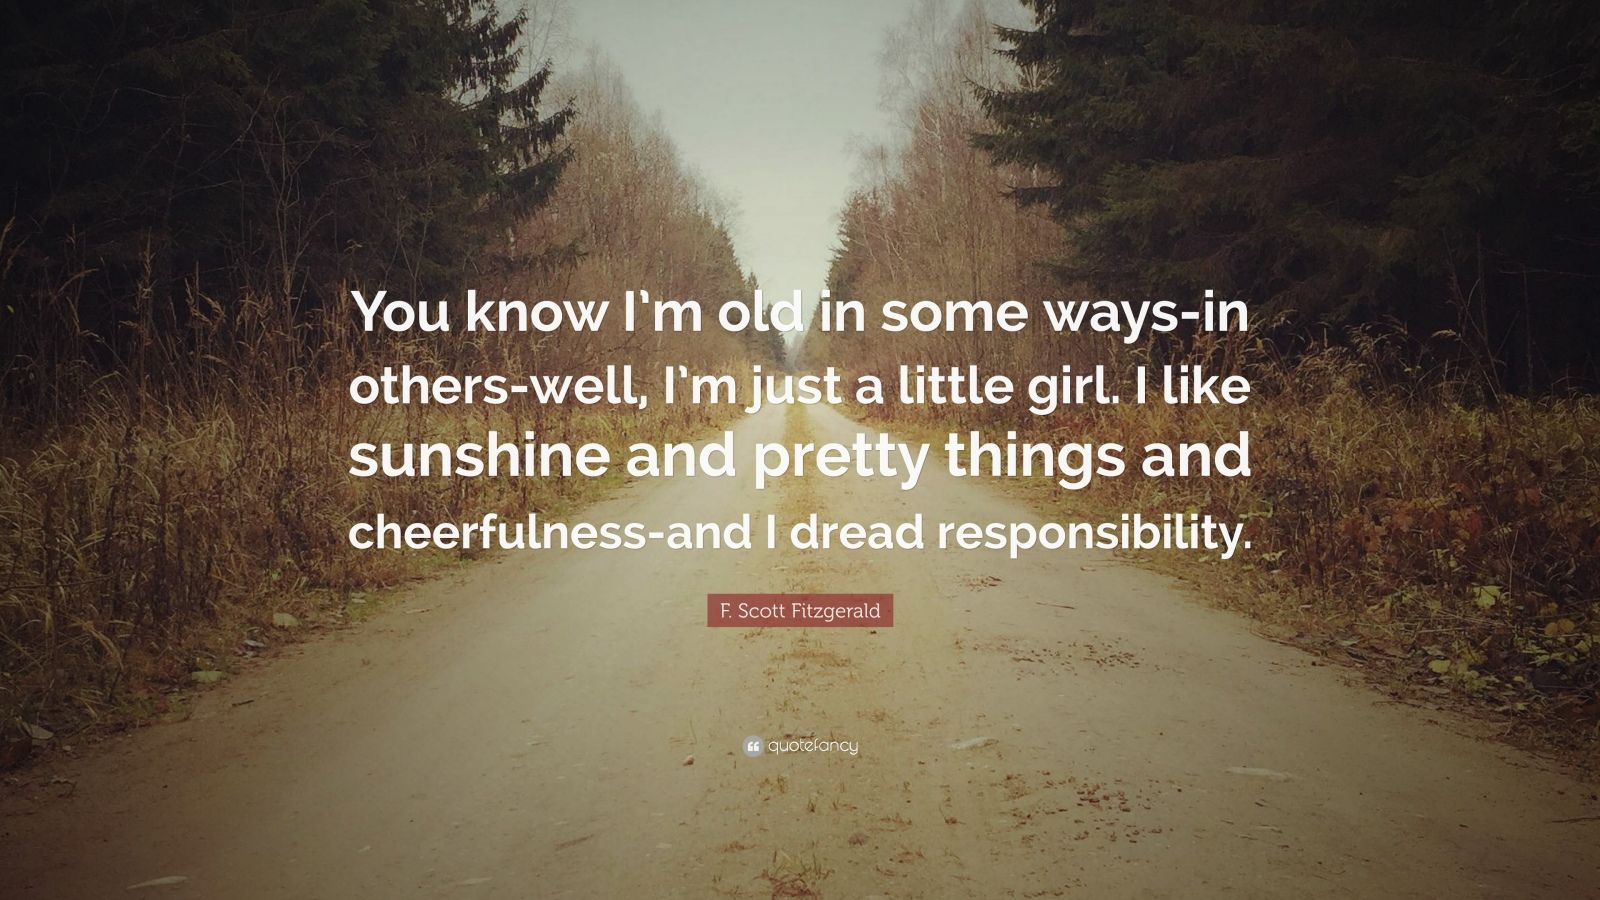 """F. Scott Fitzgerald Quote: """"You know I'm old in some ways-in others-well, I'm just a little girl. I like sunshine and pretty things and cheerfulness-and I dread responsibility."""""""